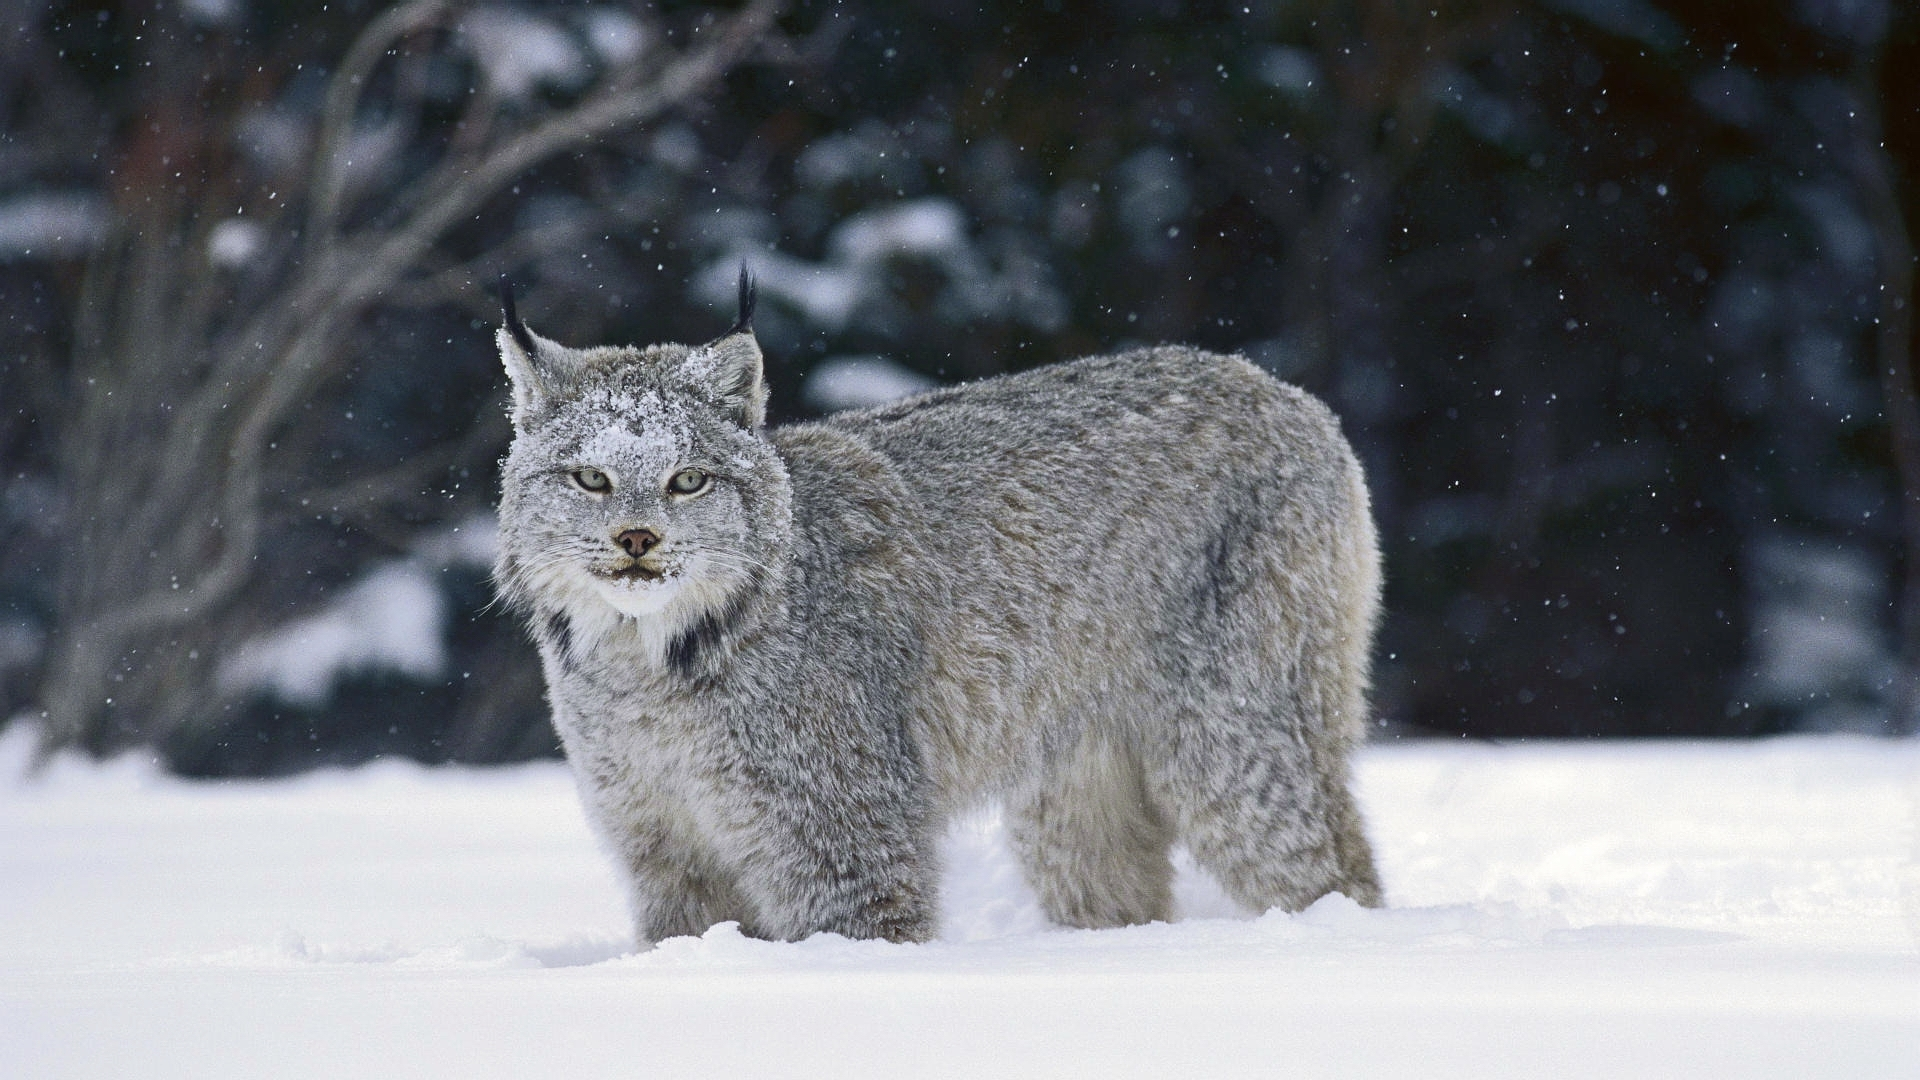 28574 download wallpaper Animals, Bobcats screensavers and pictures for free